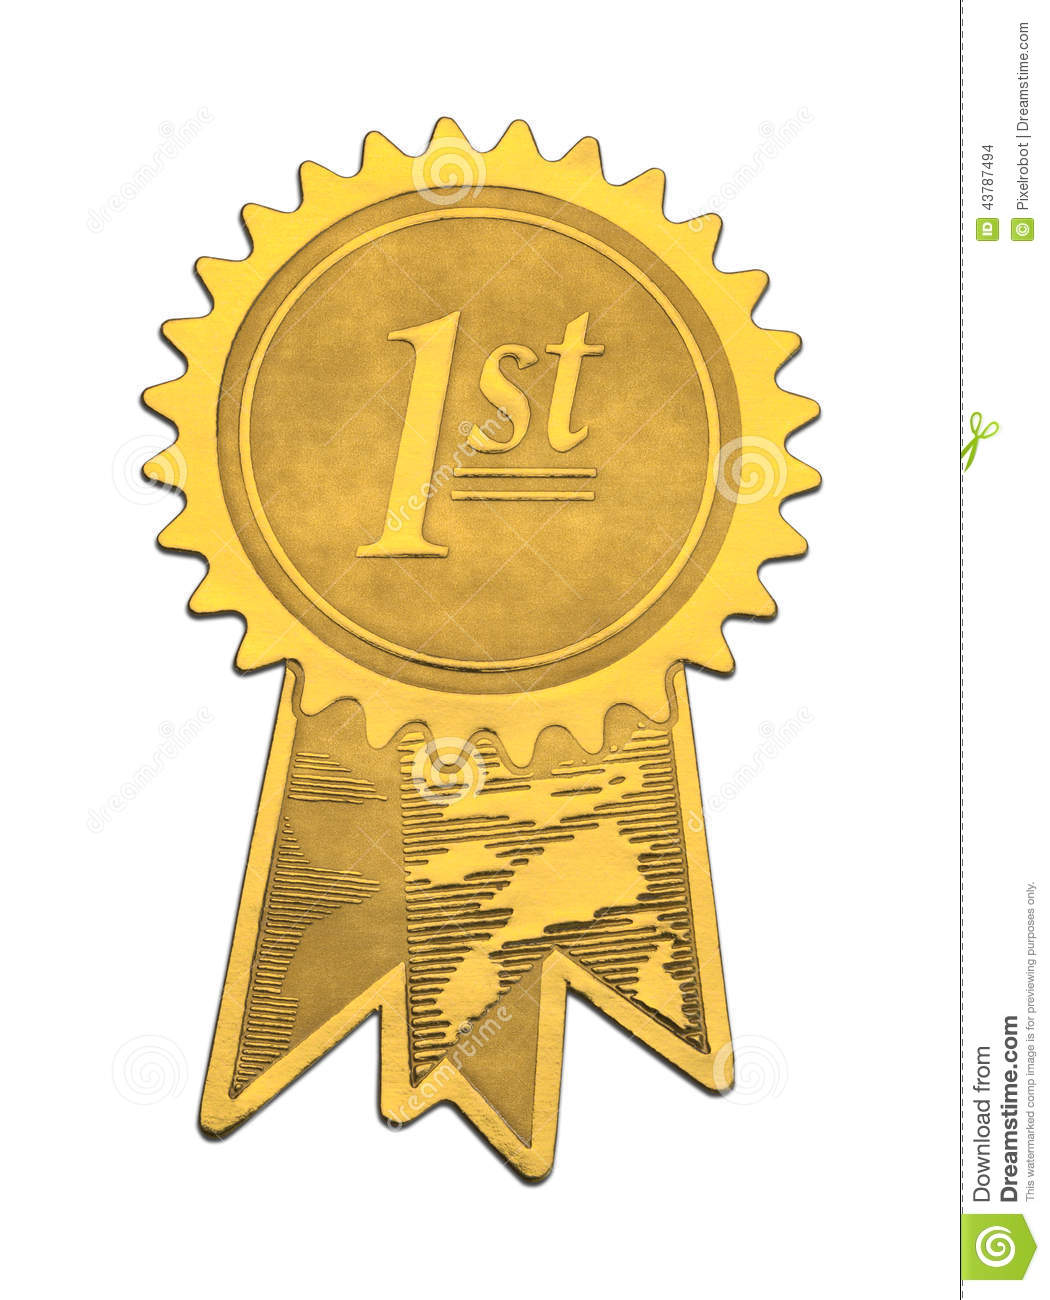 First Place Gold Seal Stock Photo Image Of Isolation